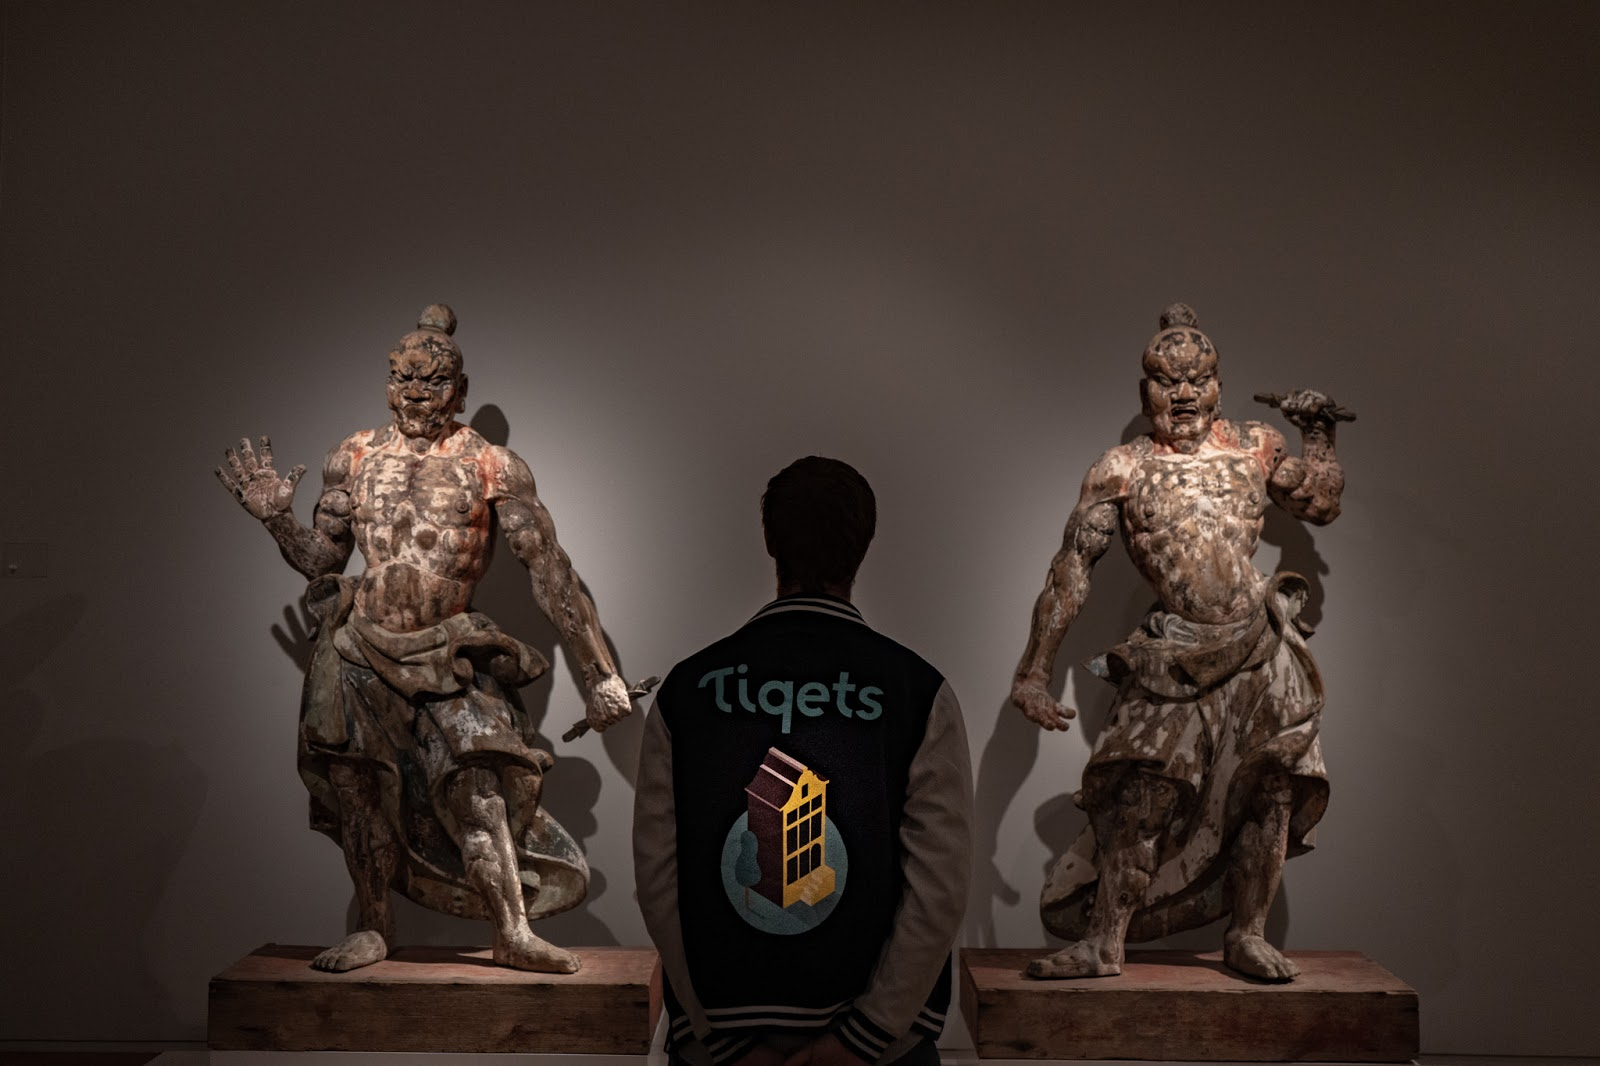 The temple guardians in the Rijksmuseum's Asian Pavilion, gorgeous hidden gems that are thousands of years old.